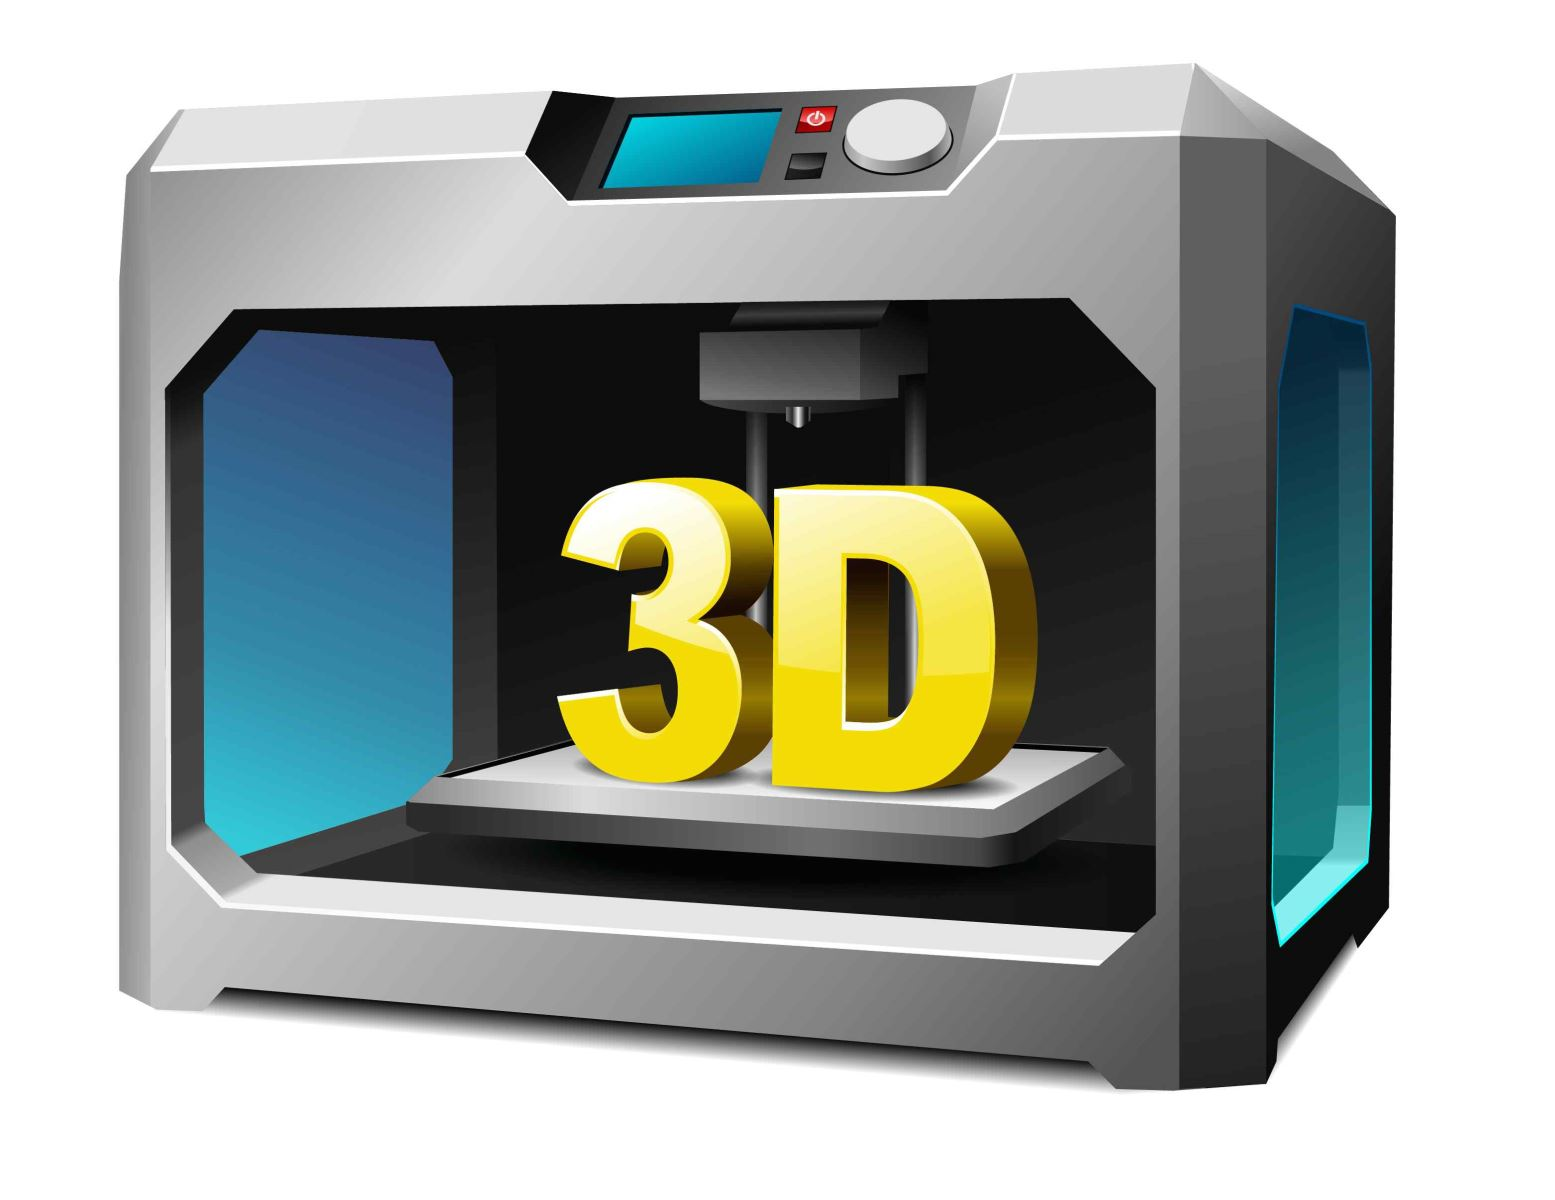 Graphic of 3D printer